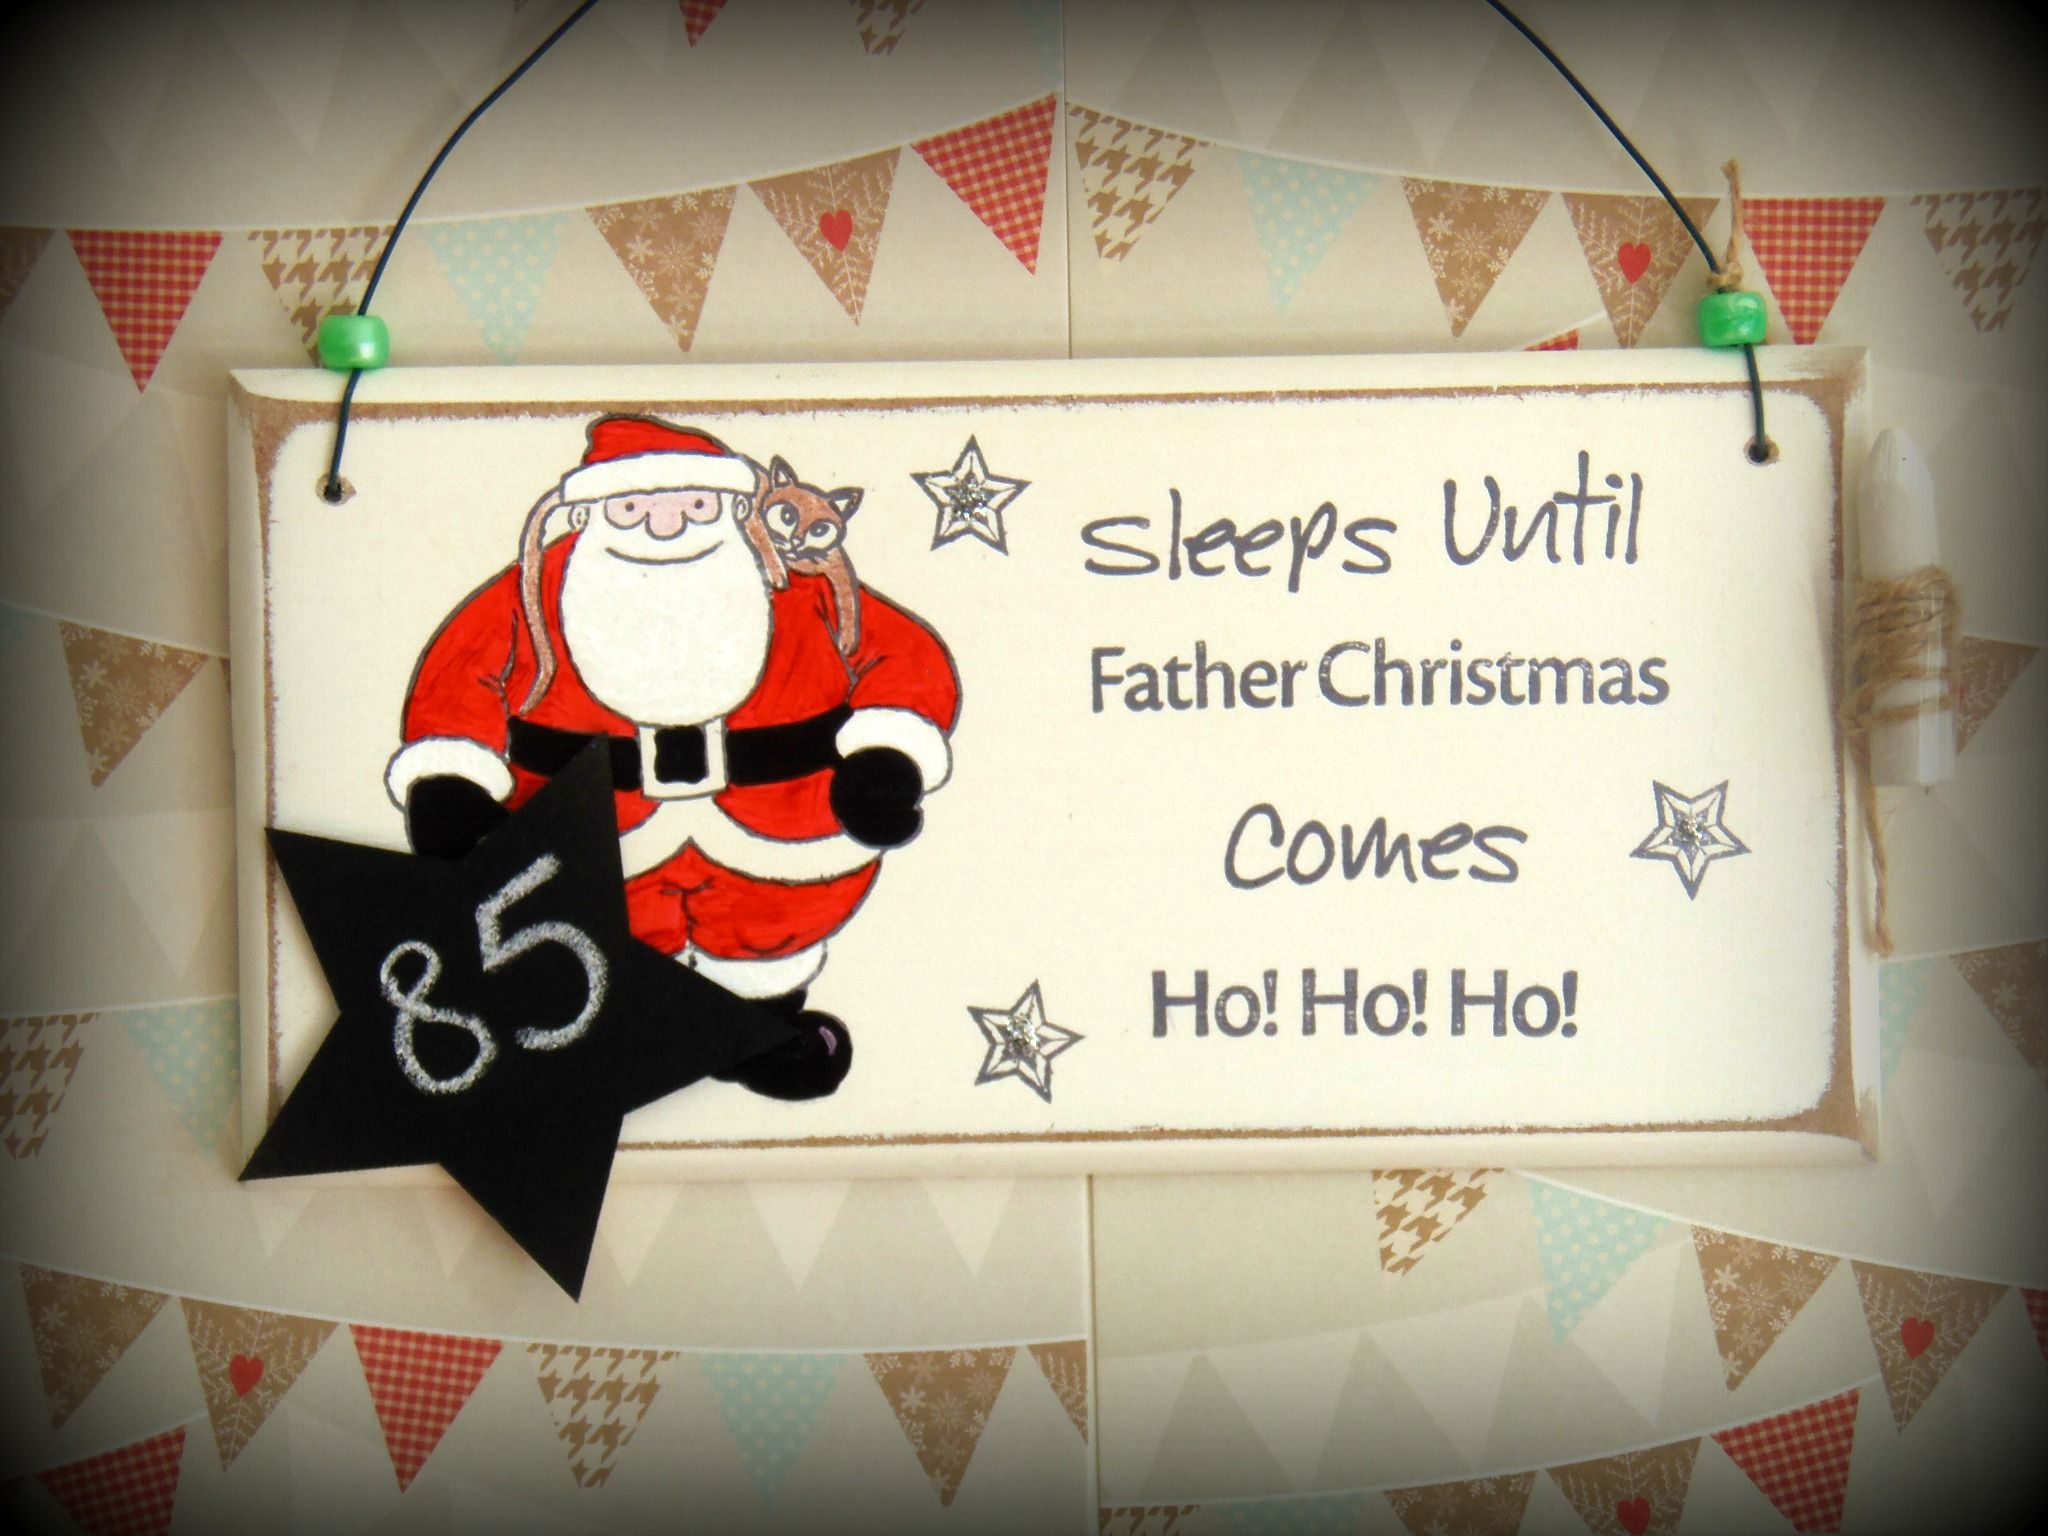 My Christmas Countdown Signs Are Back, And I Have A